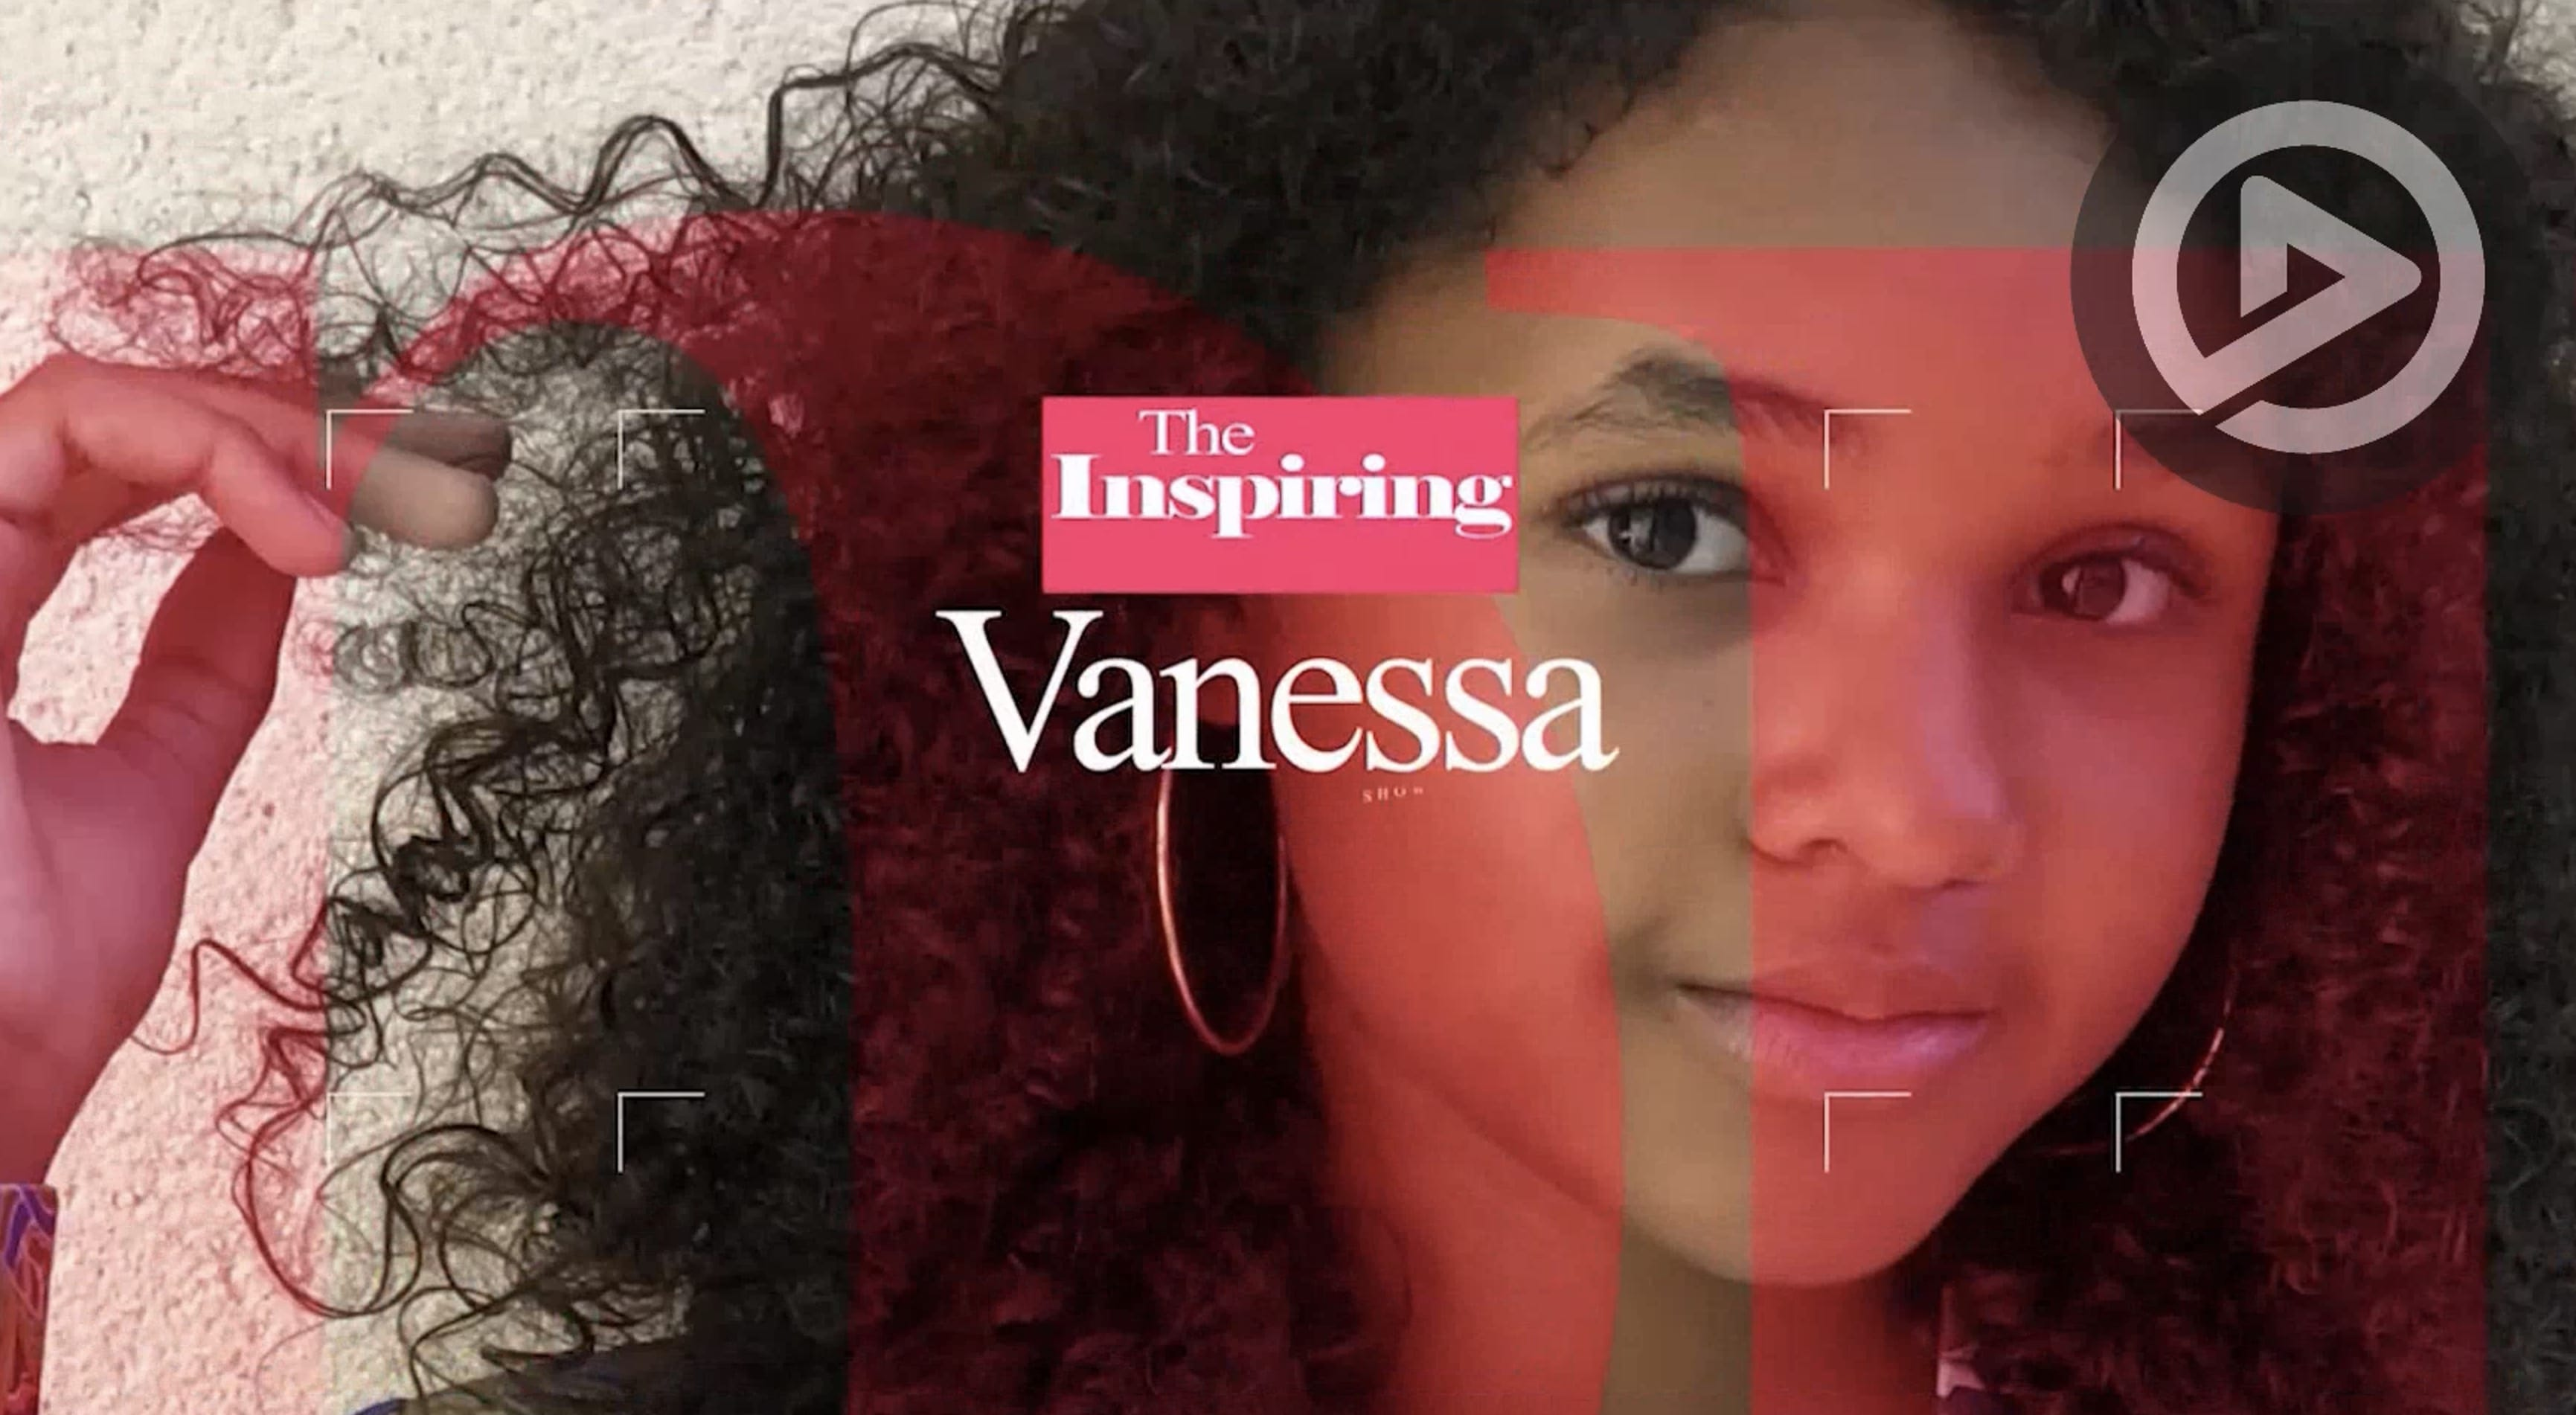 The Inspiring Vanessa Show